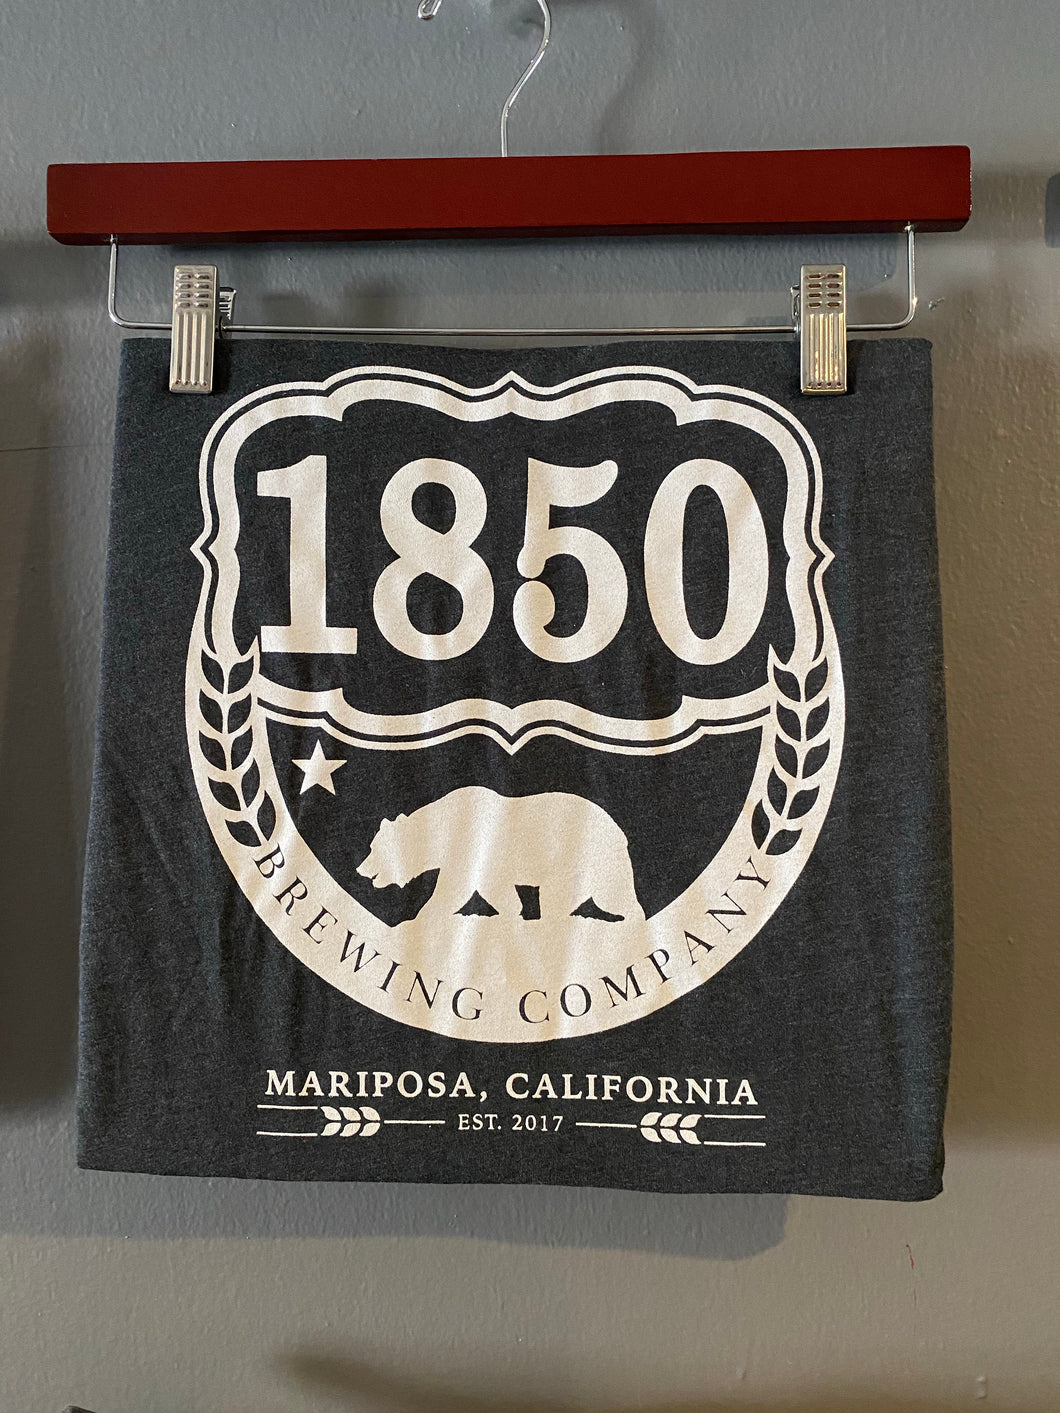 The 1850 Brewing Tee